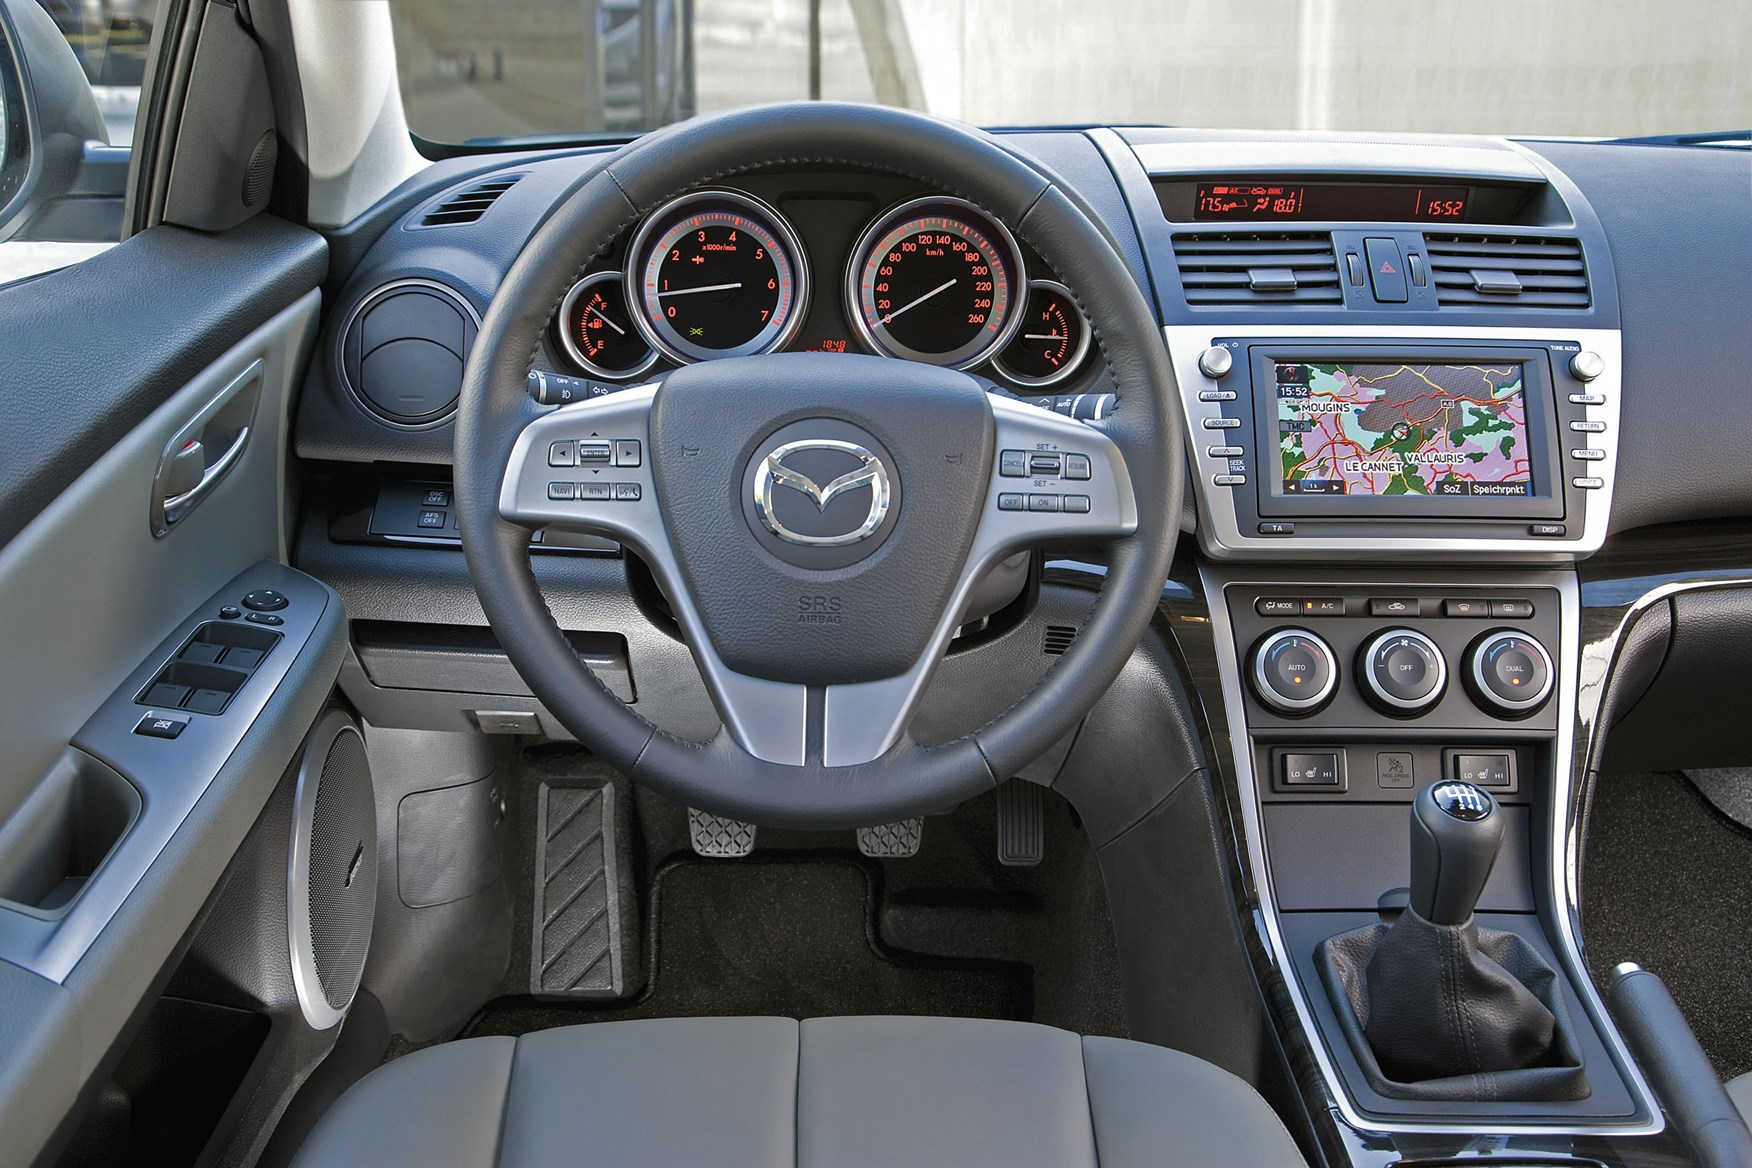 https://parkers-images.bauersecure.com/pagefiles/202853/main-interior/mazda6_interior_9.jpg